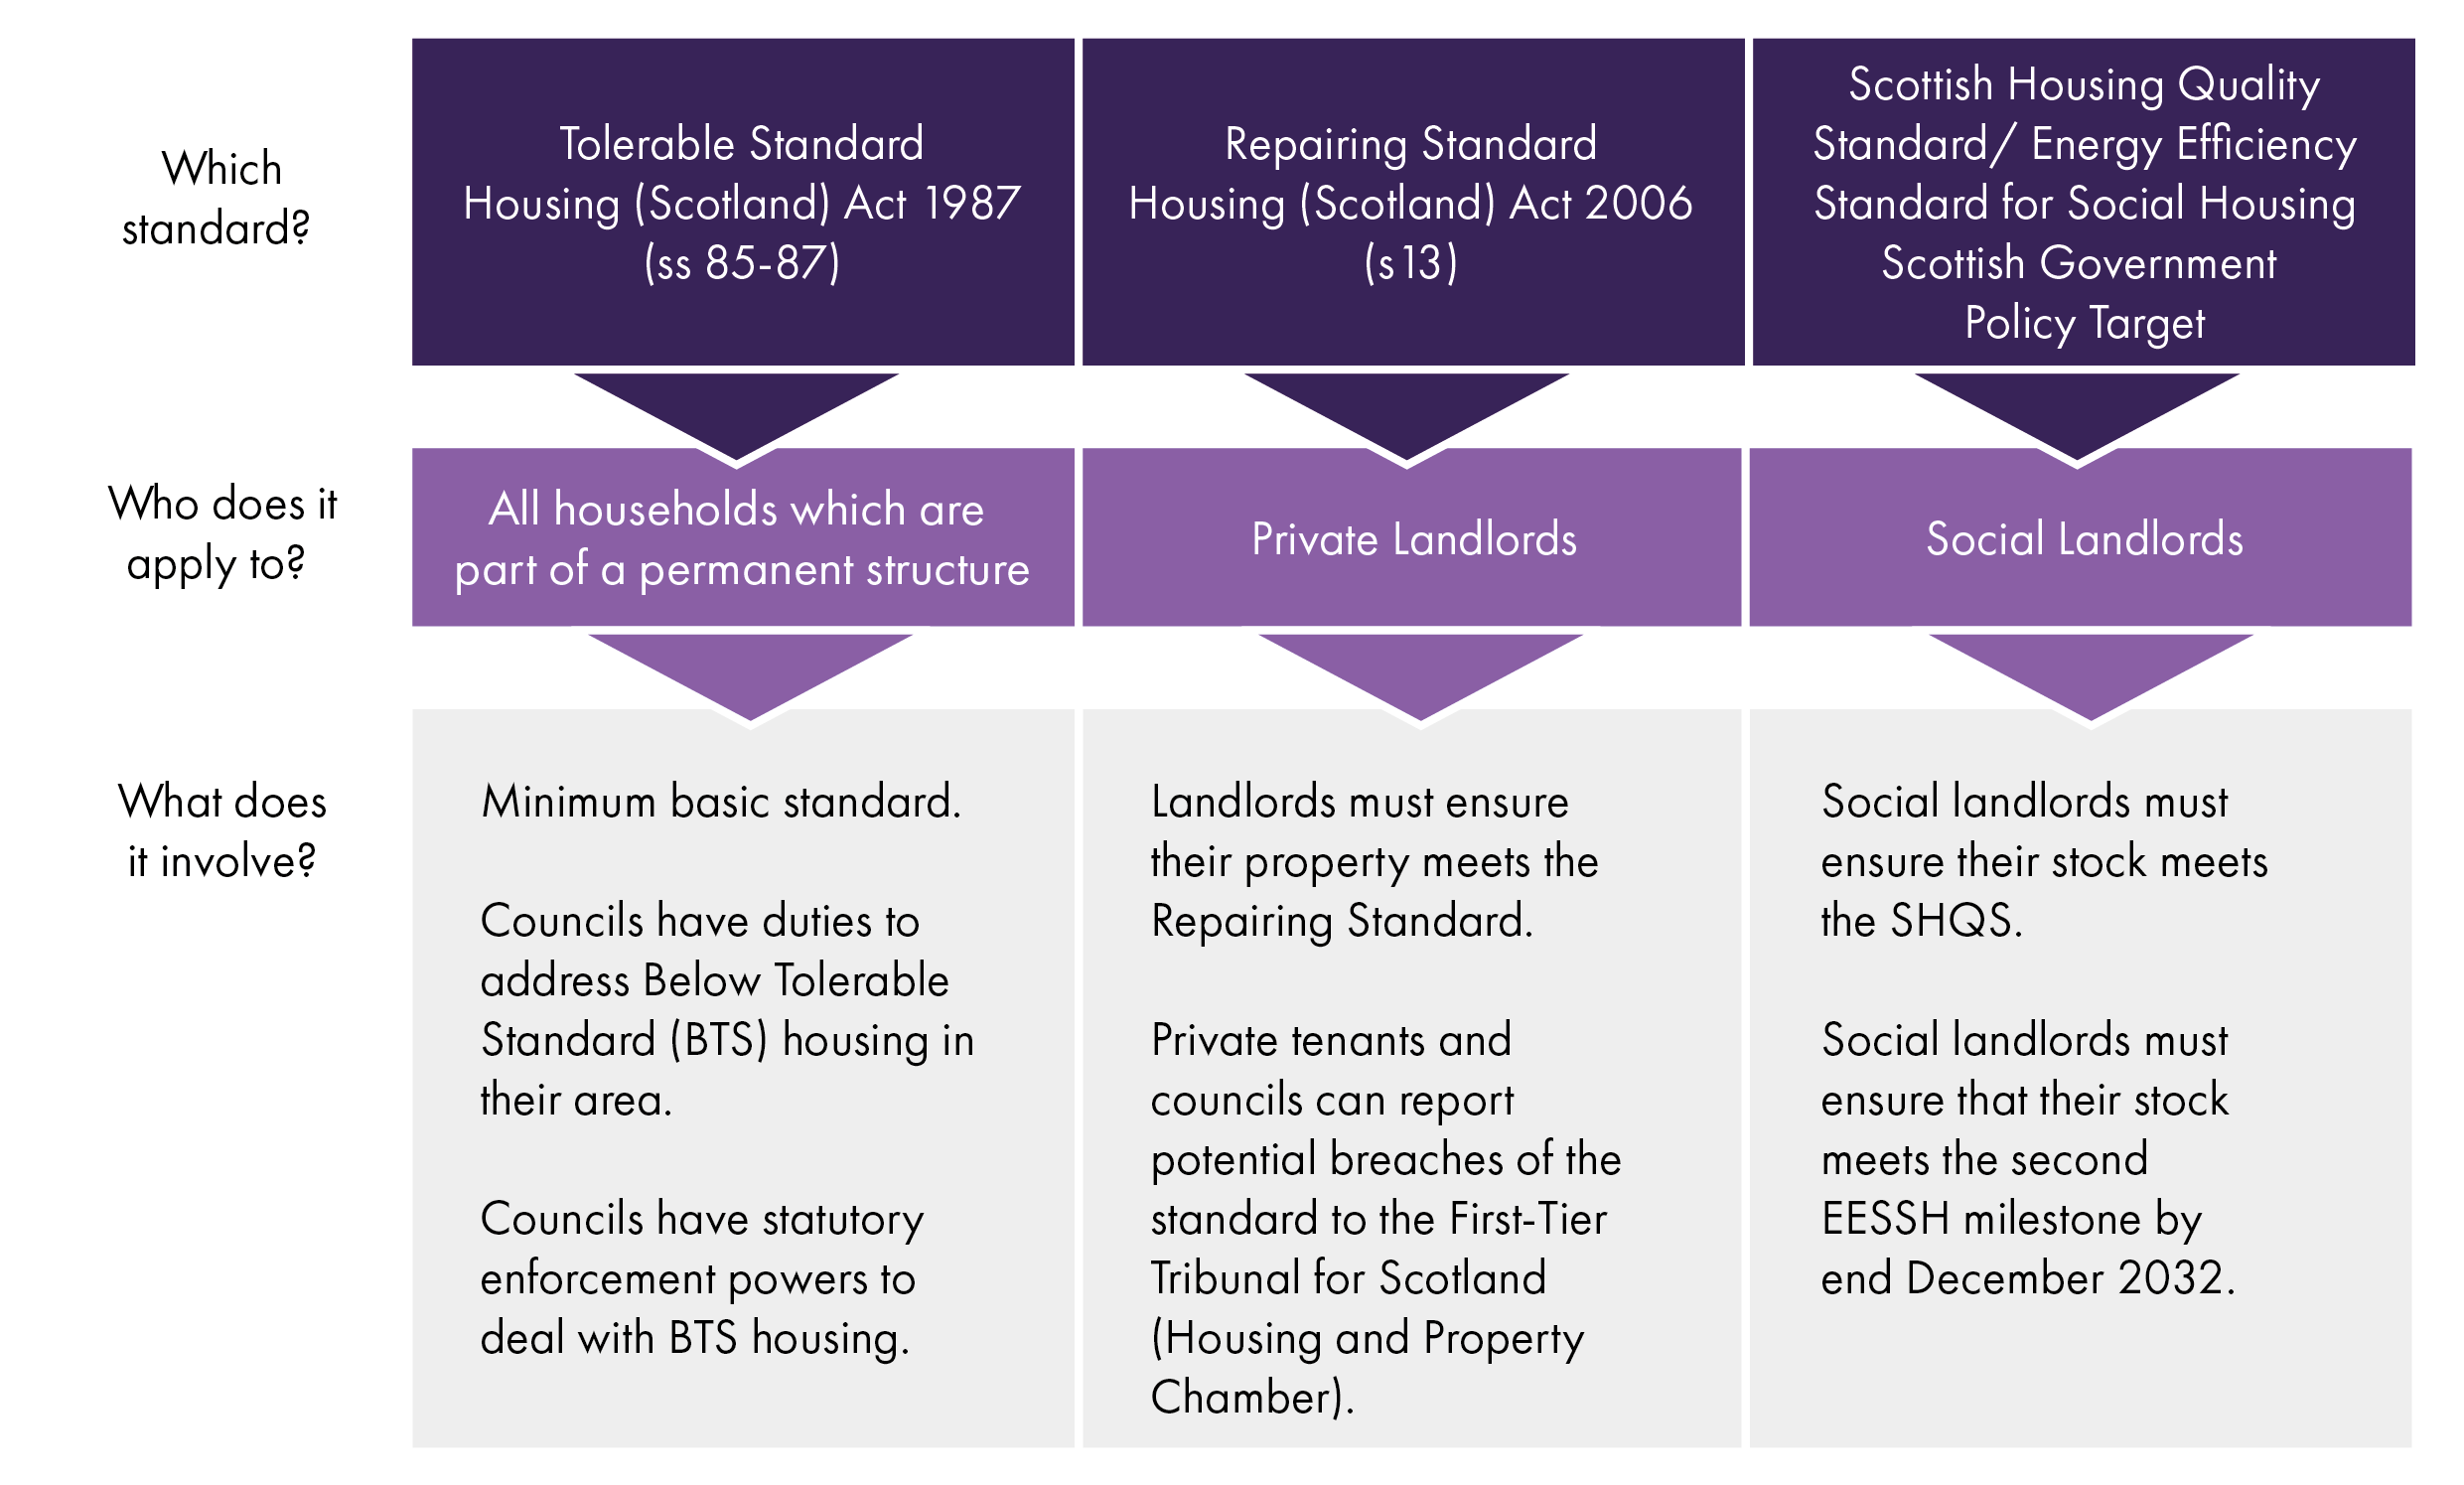 There are different housing standards in Scotland. The Tolerable Standard applies to homes in all tenures. The Repairing Standard applies to private rented homes. The Scottish Housing Quality Standard and the Energy Efficiency Standard for Social Housing applies to social housing.